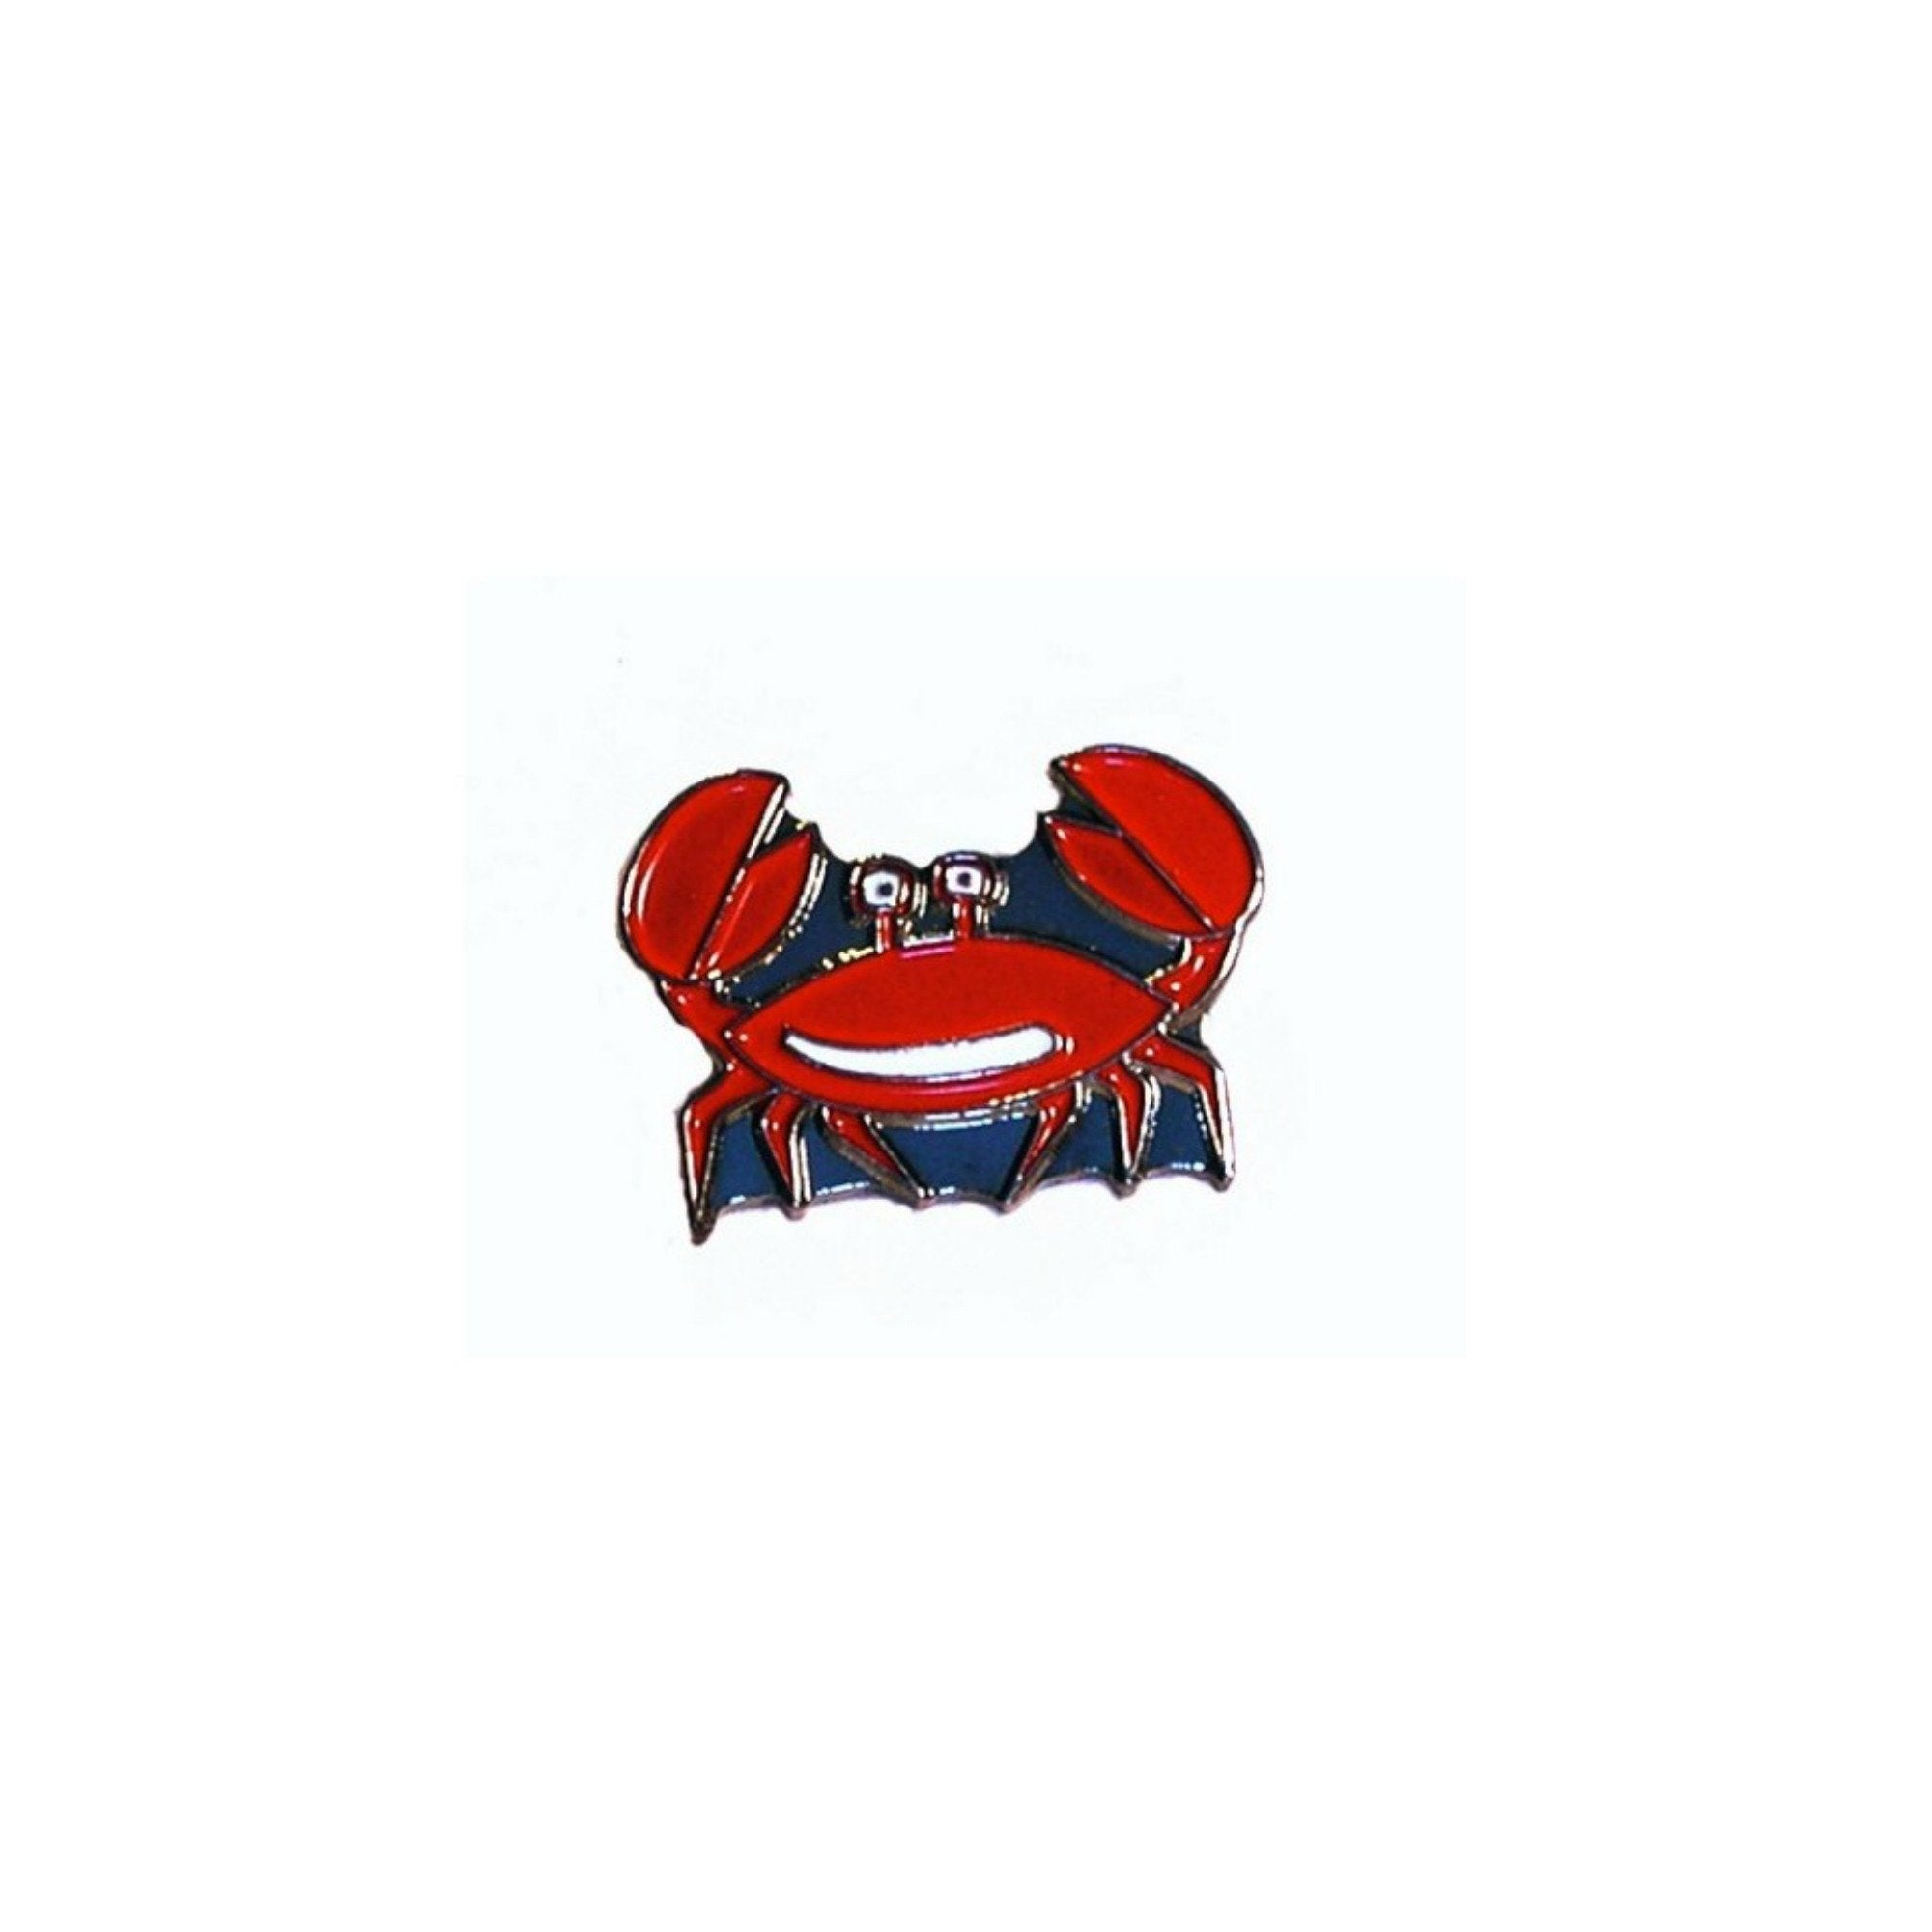 Cute Crab Enamel Lapel Pin Badge - Minimum Mouse